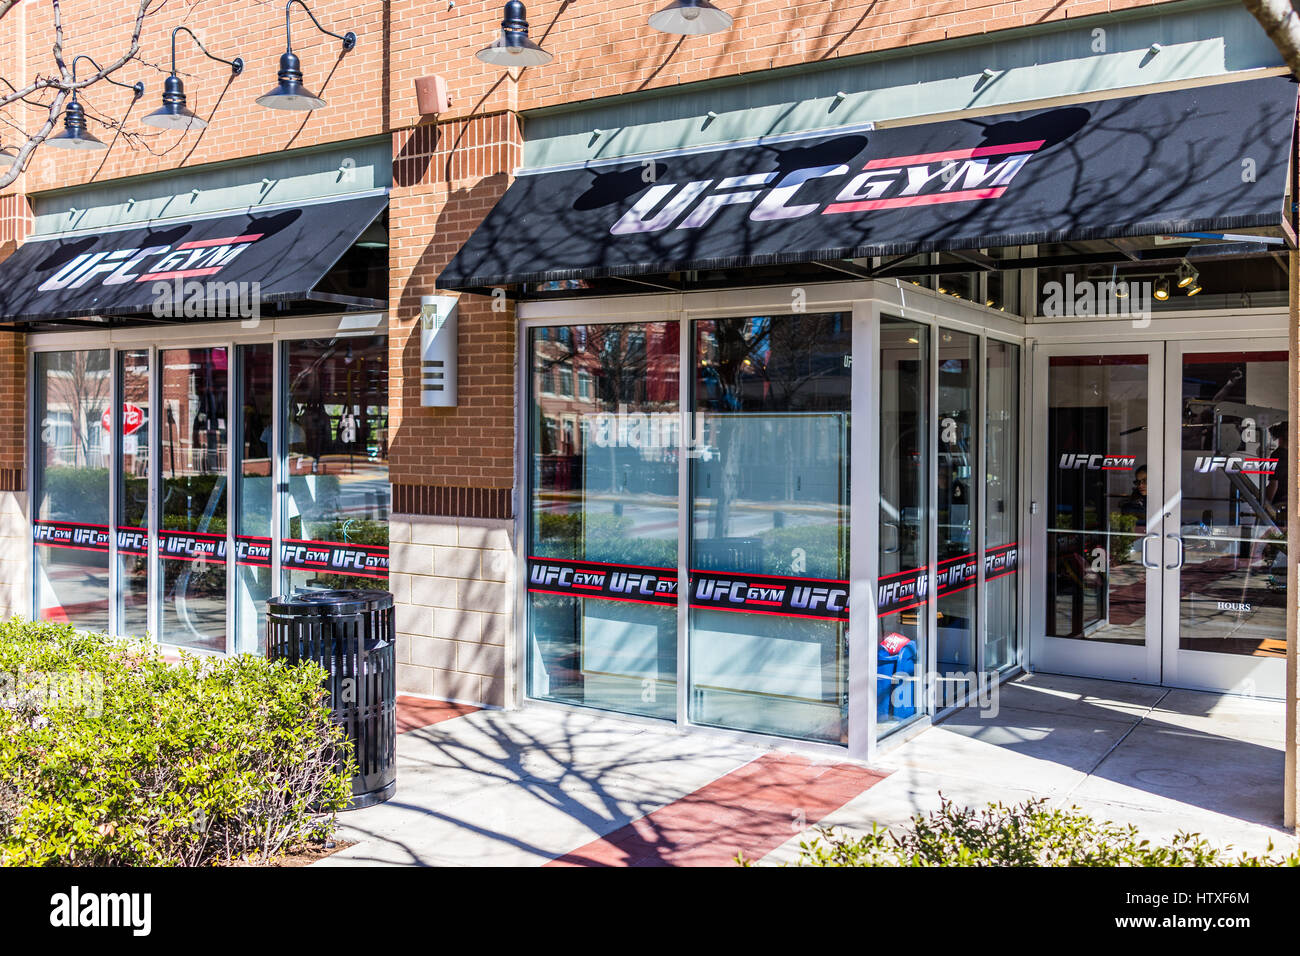 Fairfax, USA - March 4, 2017: UFC Gym entrance with signs - Stock Image